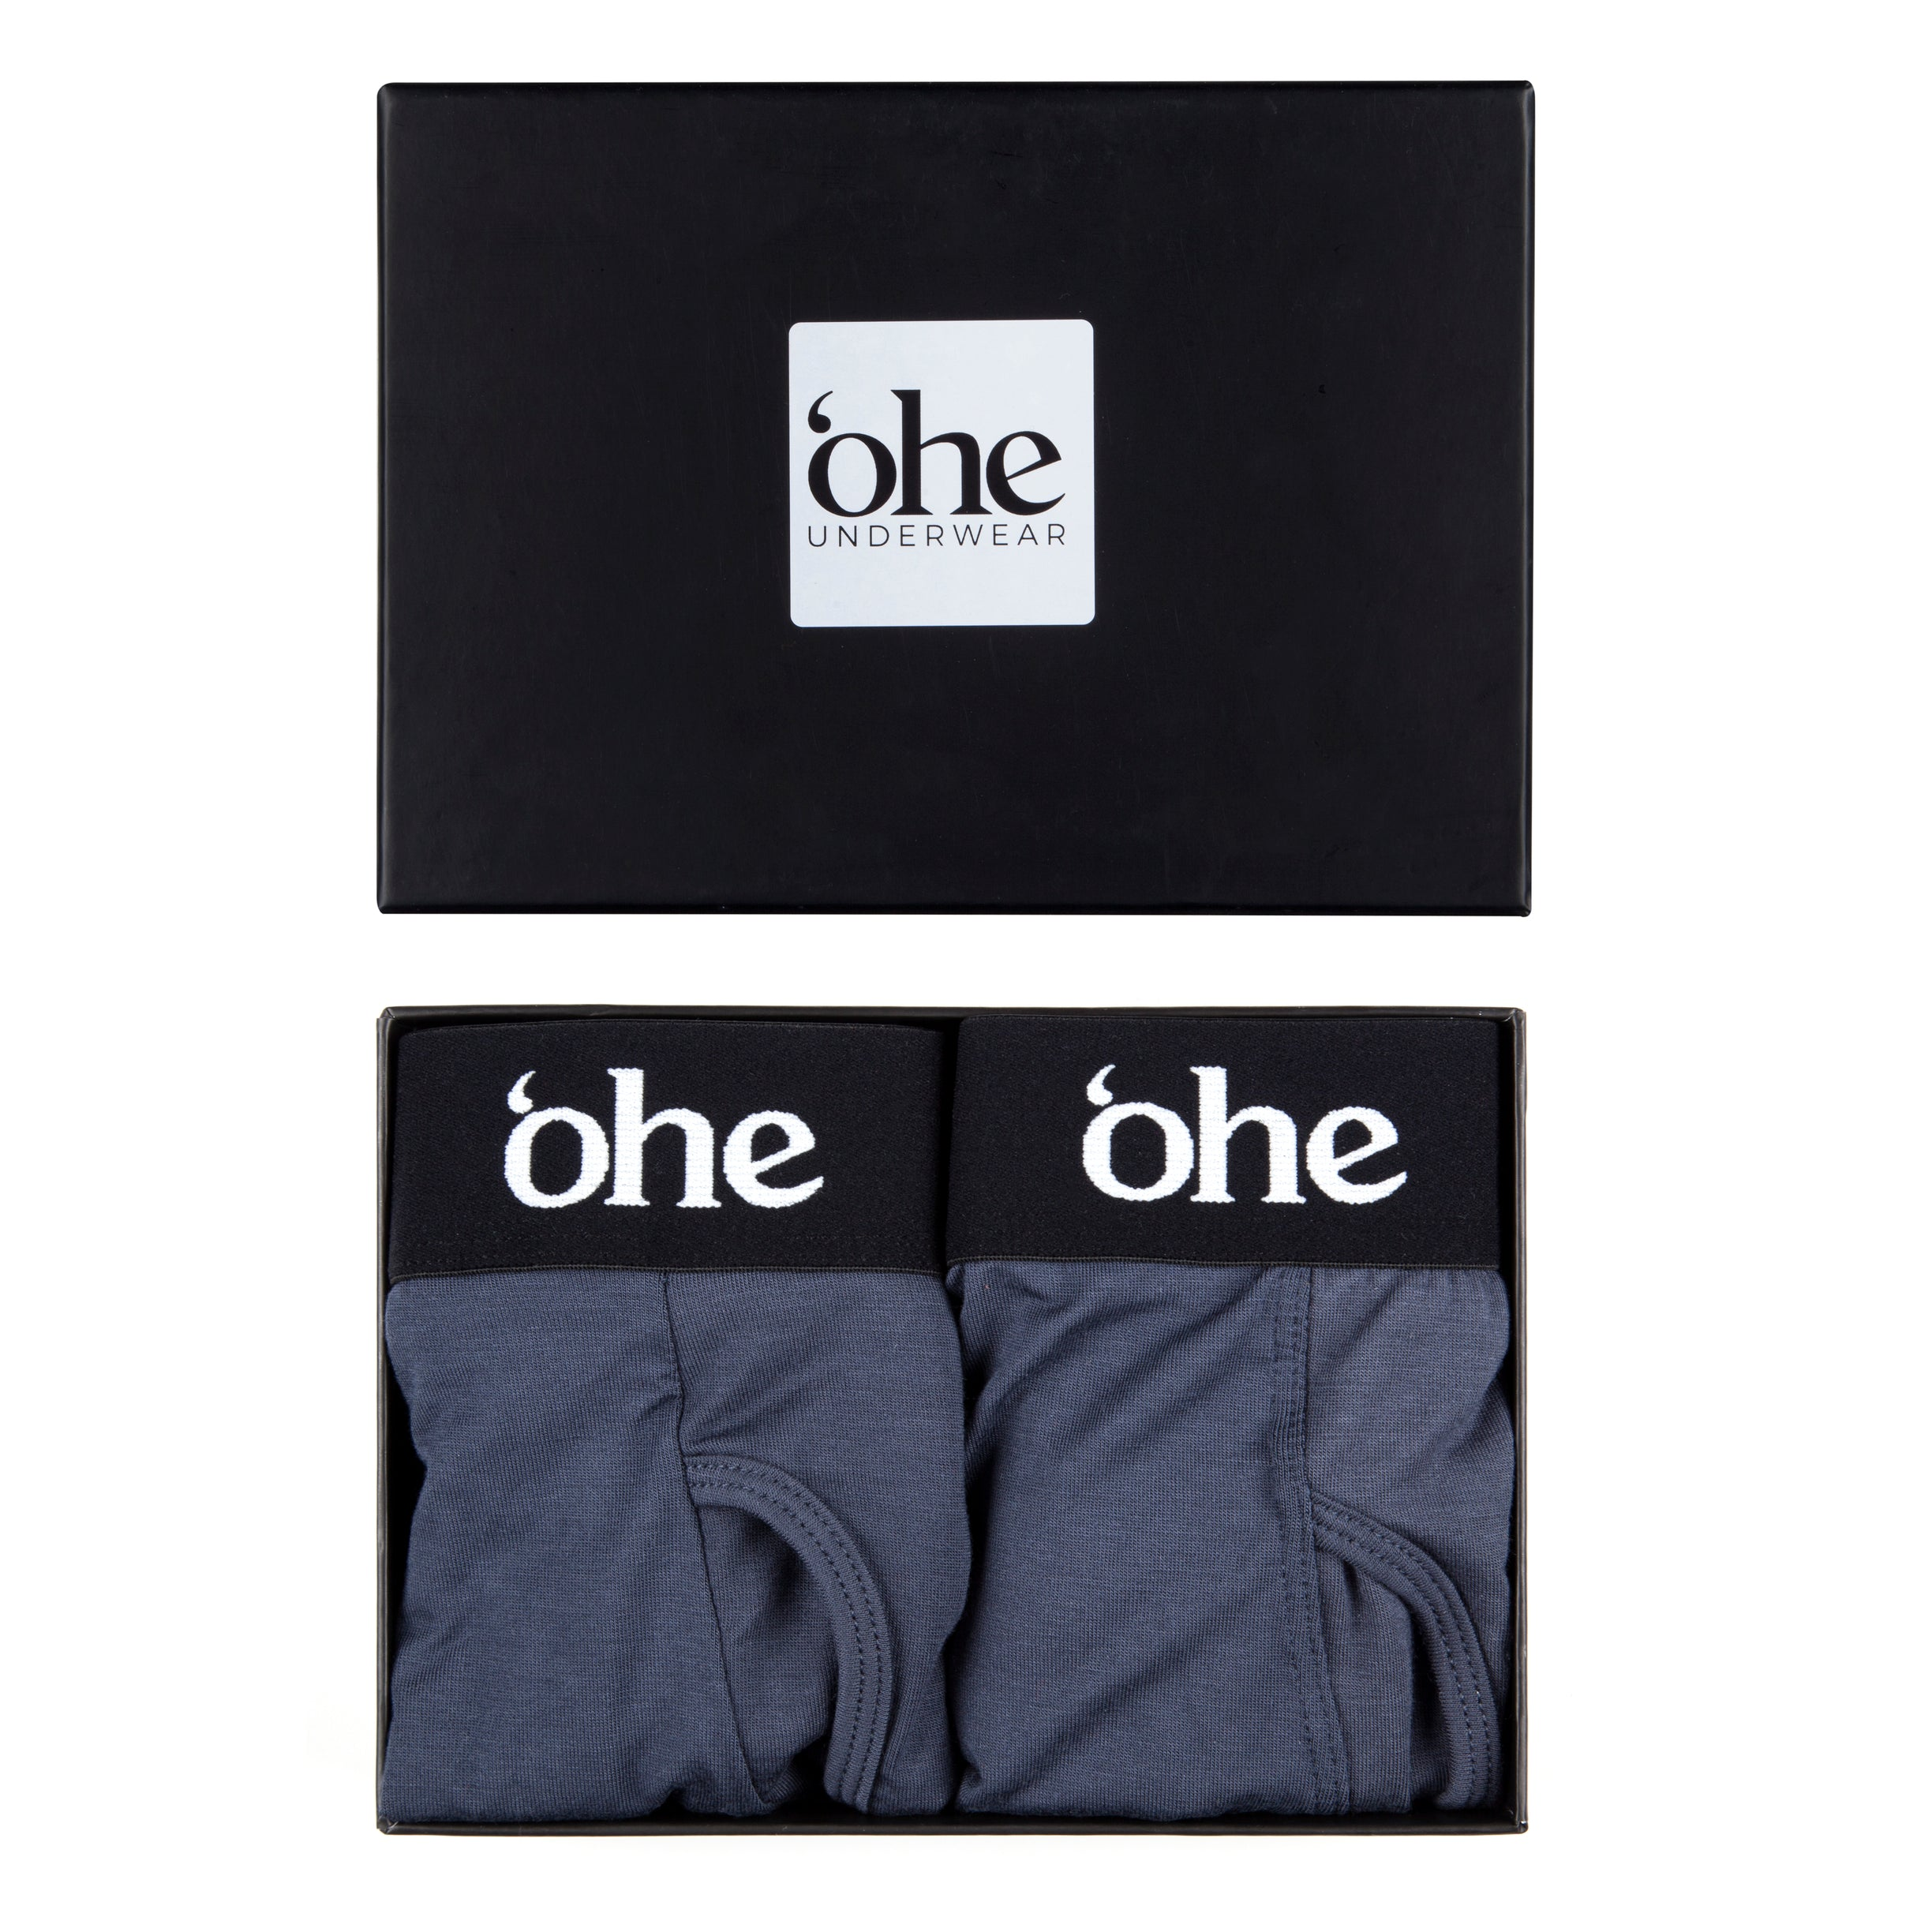 Two Pack Grey Bamboo Boxers - 'ohe underwear